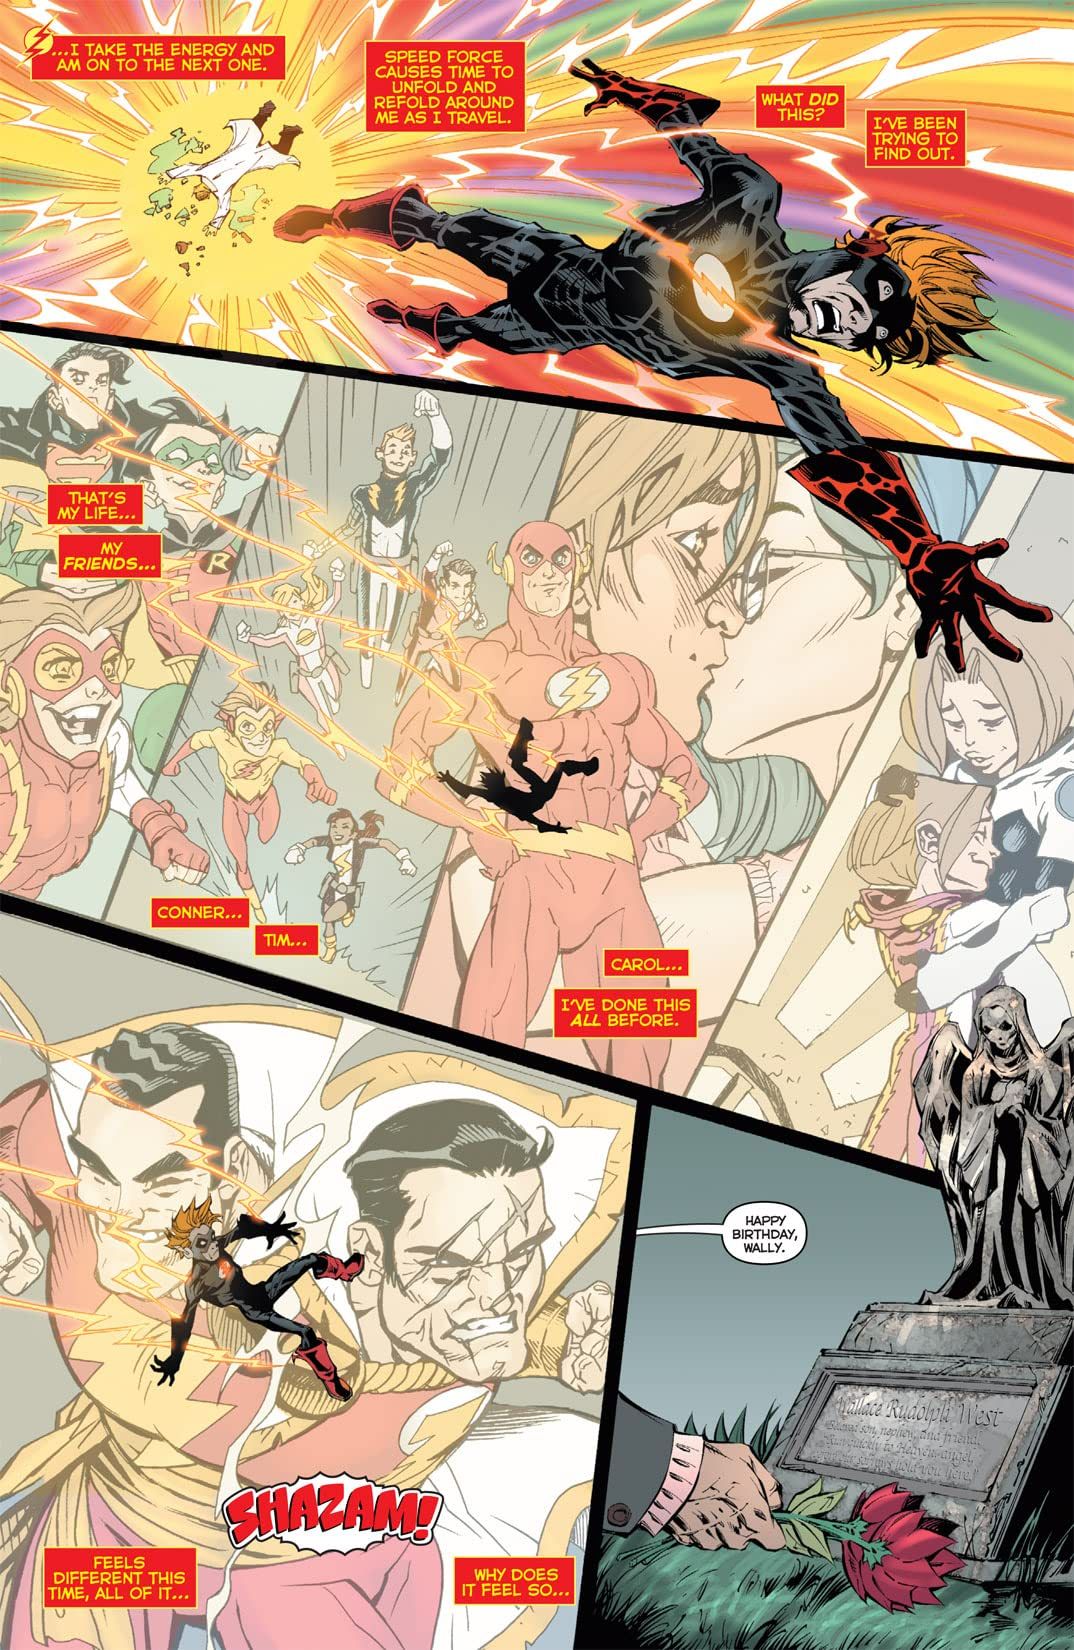 Flashpoint: Kid Flash Lost #3 (of 3)